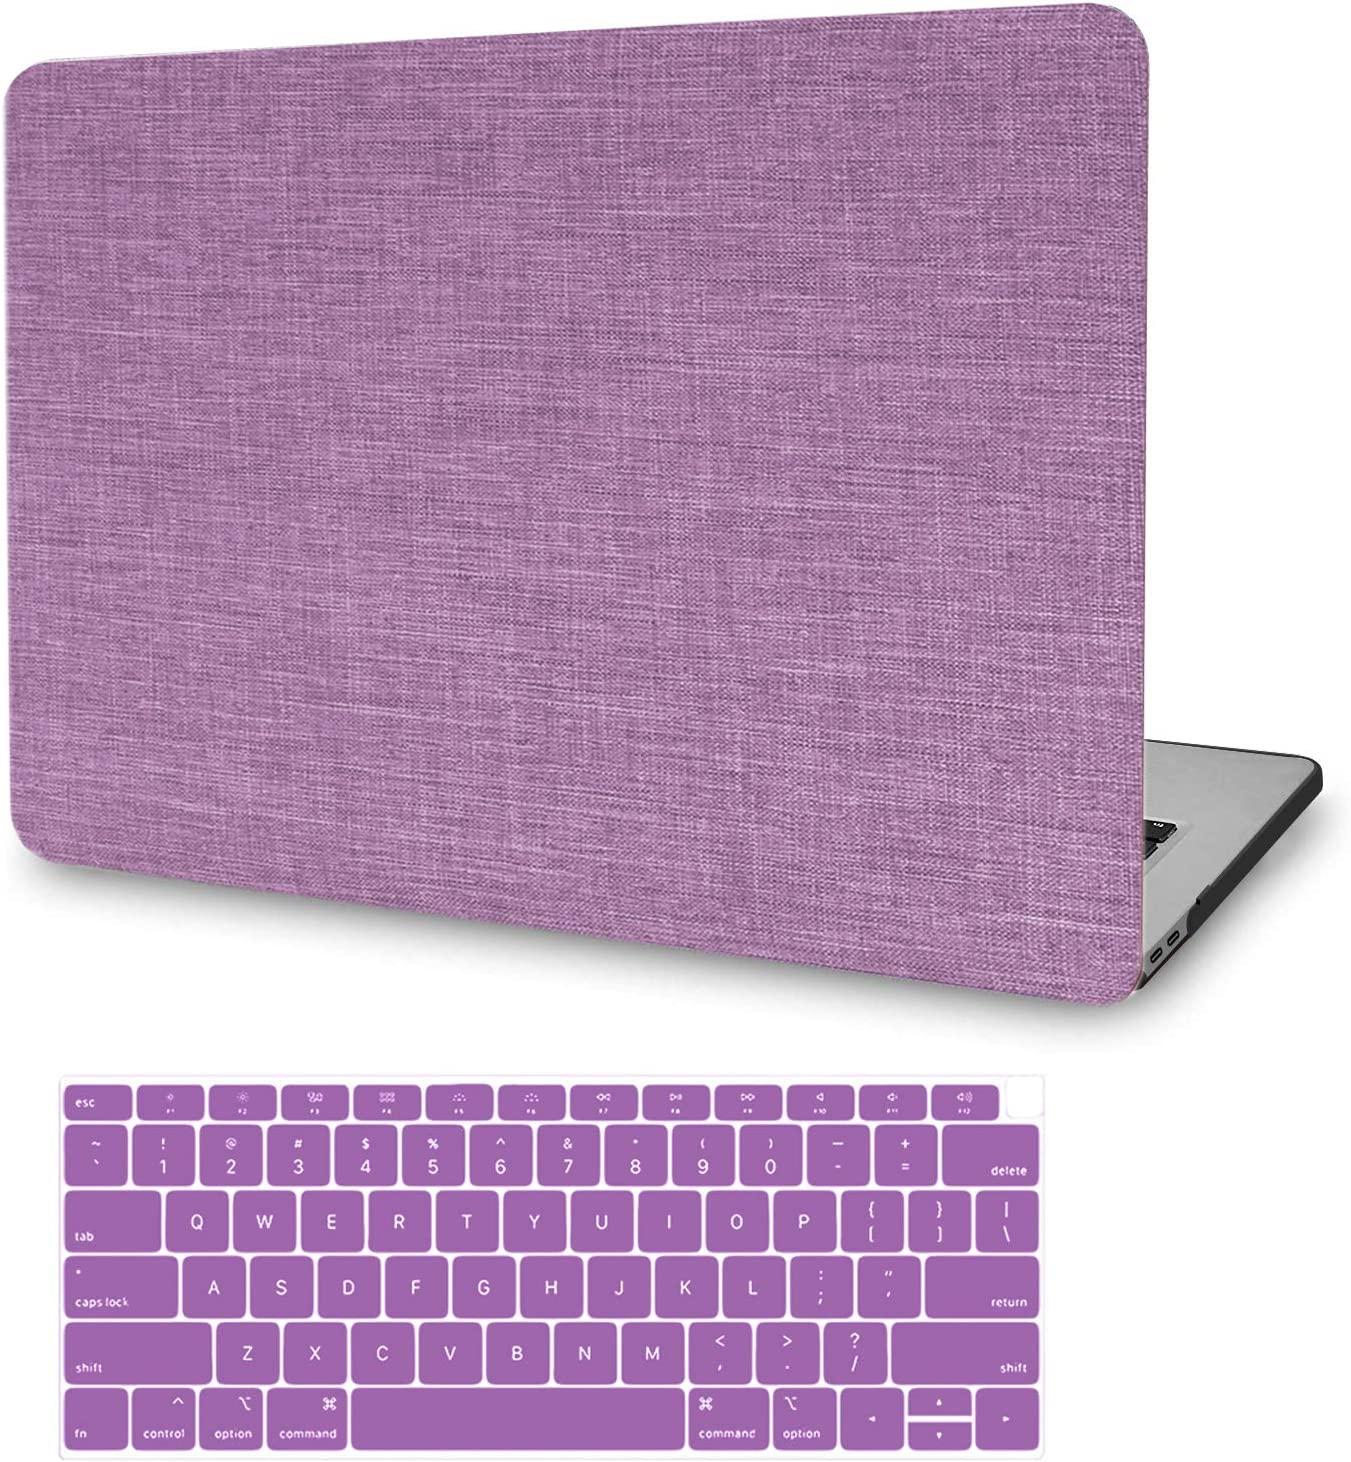 MacBook Pro 13 Inch Case 2019 2018 2017 2016 Release A2159/A1989/A1706/A1708, JGOO Fabric Plastic Hard Shell Case with Keyboard Cover for Apple MacBook Pro 13 with/Without Touch Bar, Purple